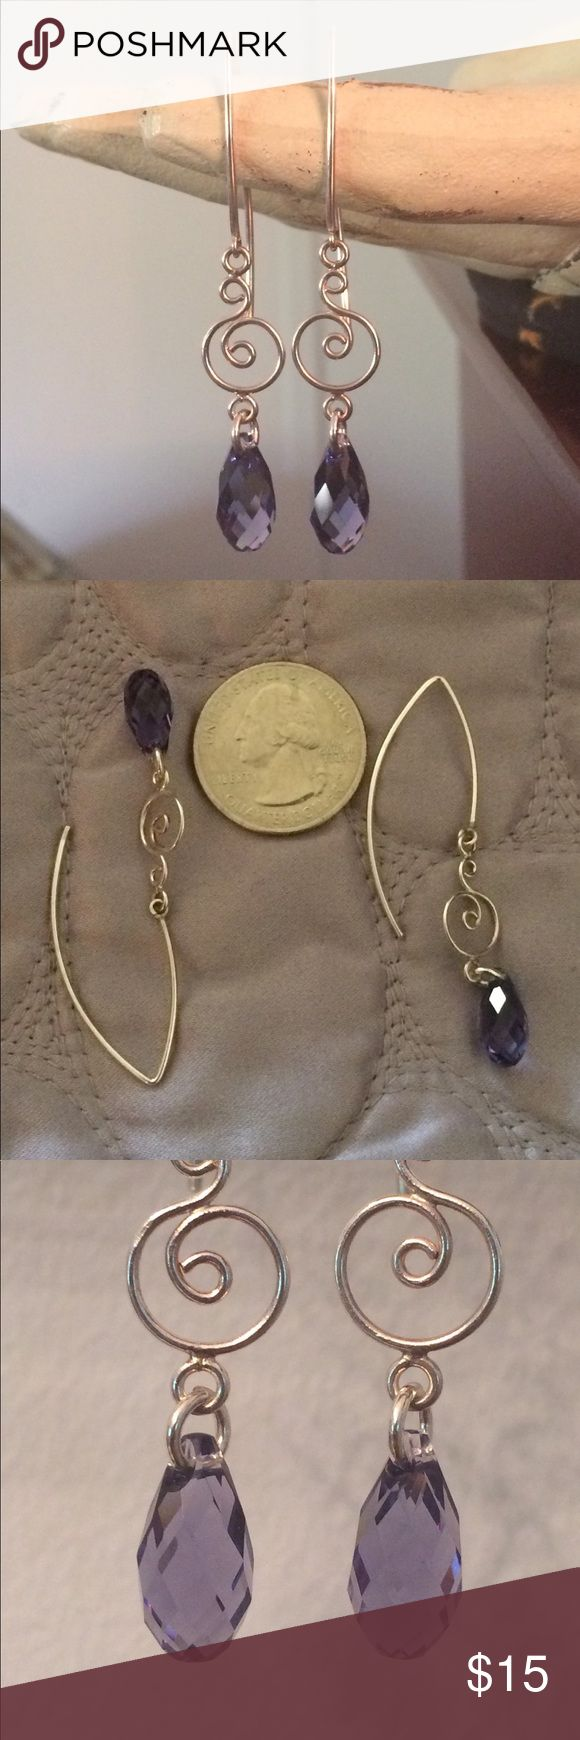 """Lavender Purple Faceted Crystal Sterling Earrings These faceted crystal & Sterling silver earrings are in used but very good condition. Total length is 2 3/16"""".  The crystal is a more lavender color which doesn't seem to show well in my photos and measures 1/2"""" long. Metal hand is for display purposes only. Jewelry Earrings"""